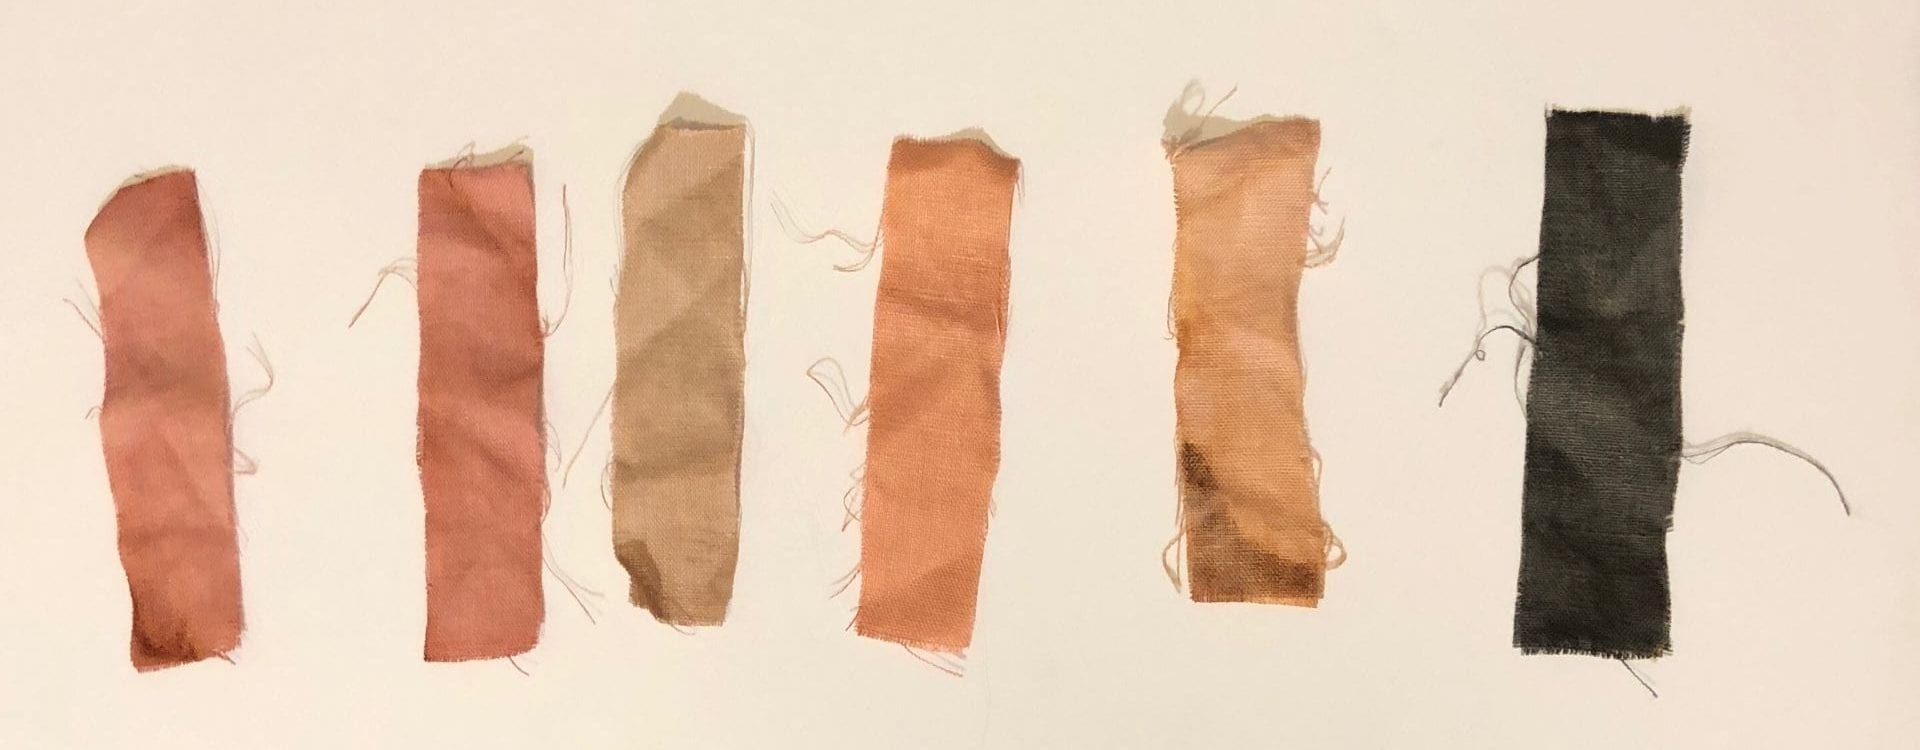 Natural Dye Experiment: Avocado Skins and Pits